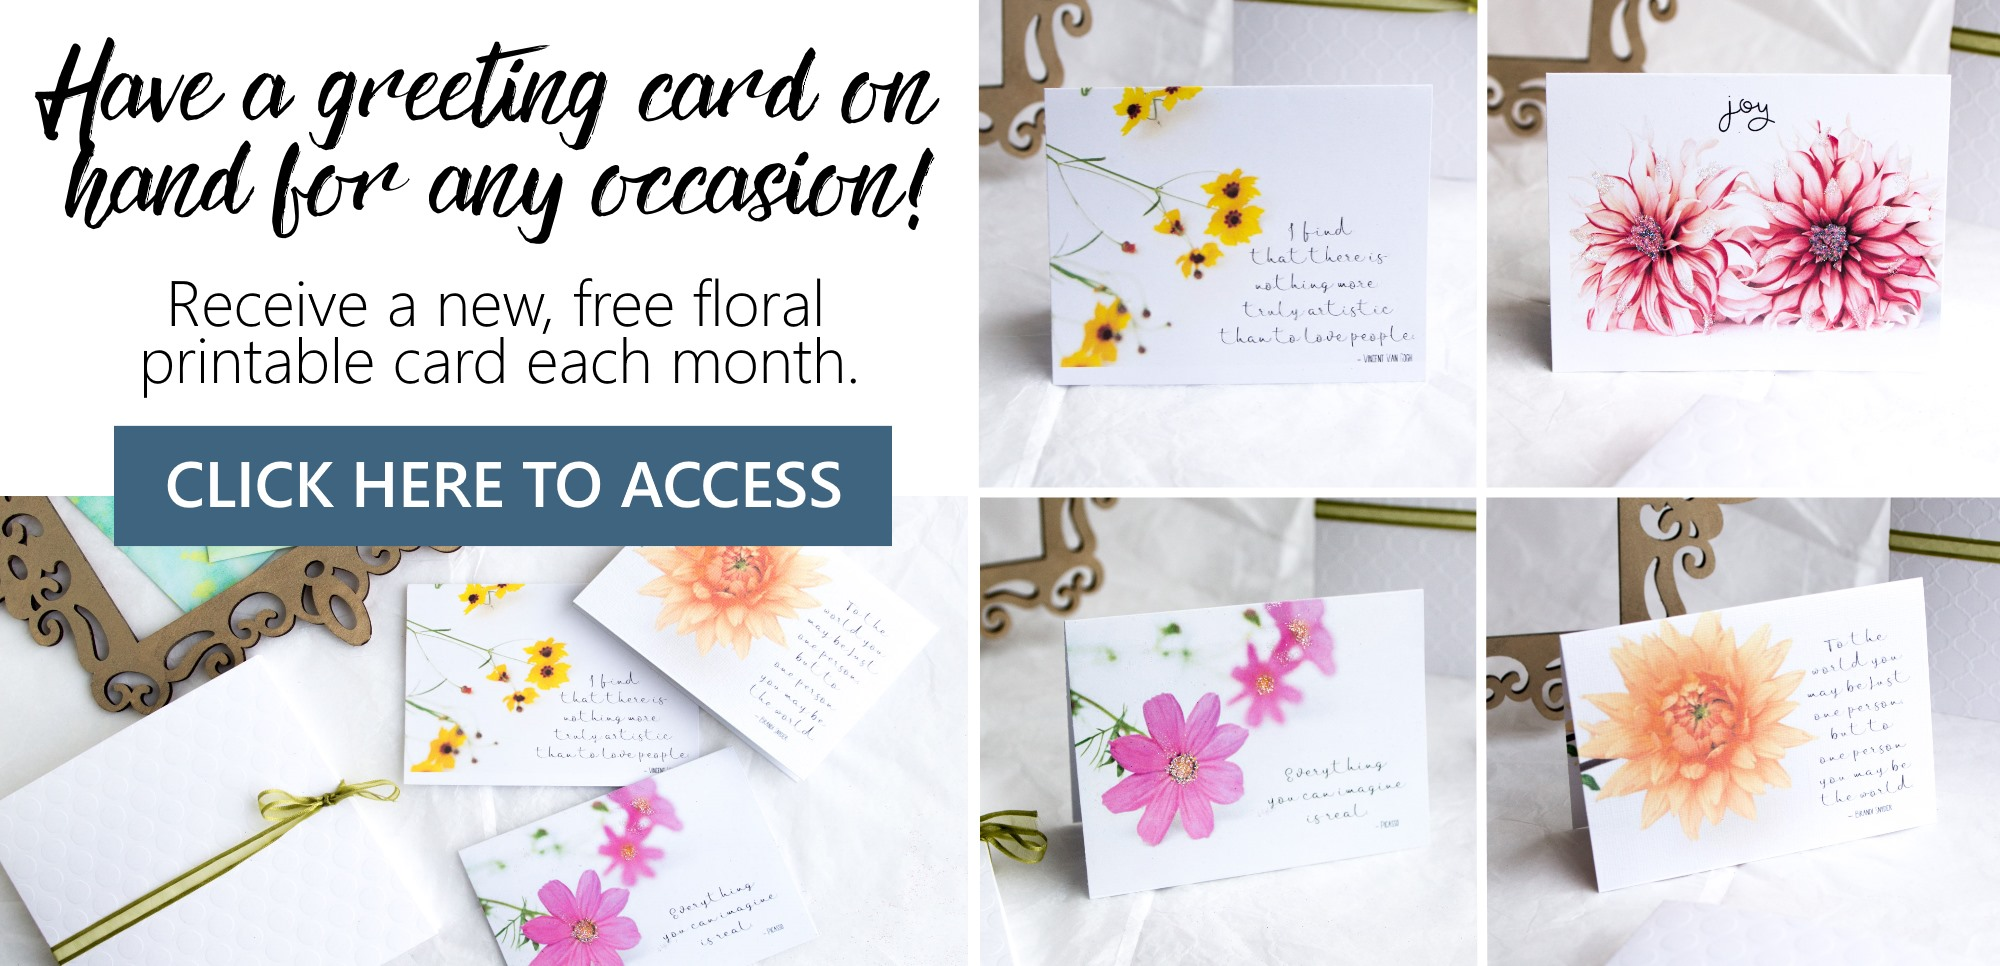 Free printable summer flowers greeting cards sustain my craft habit save kristyandbryce Choice Image